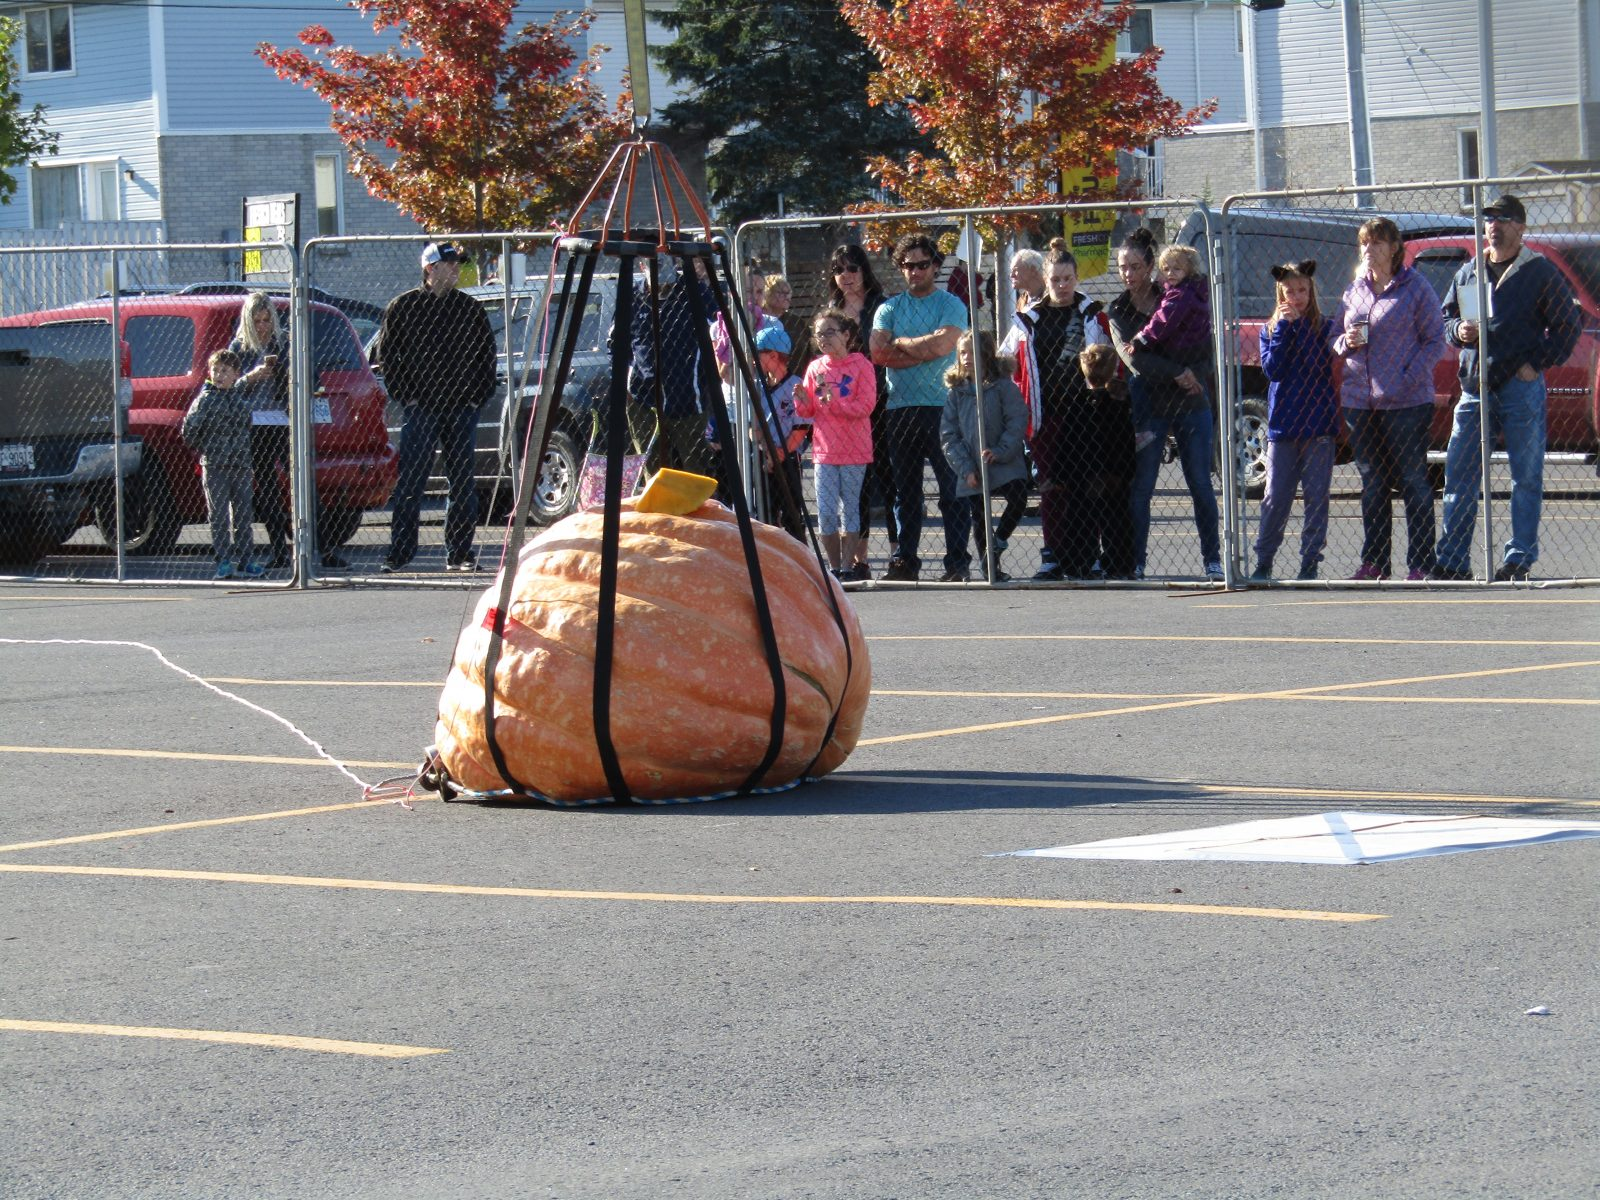 Festive fun at Pumpkin Drop